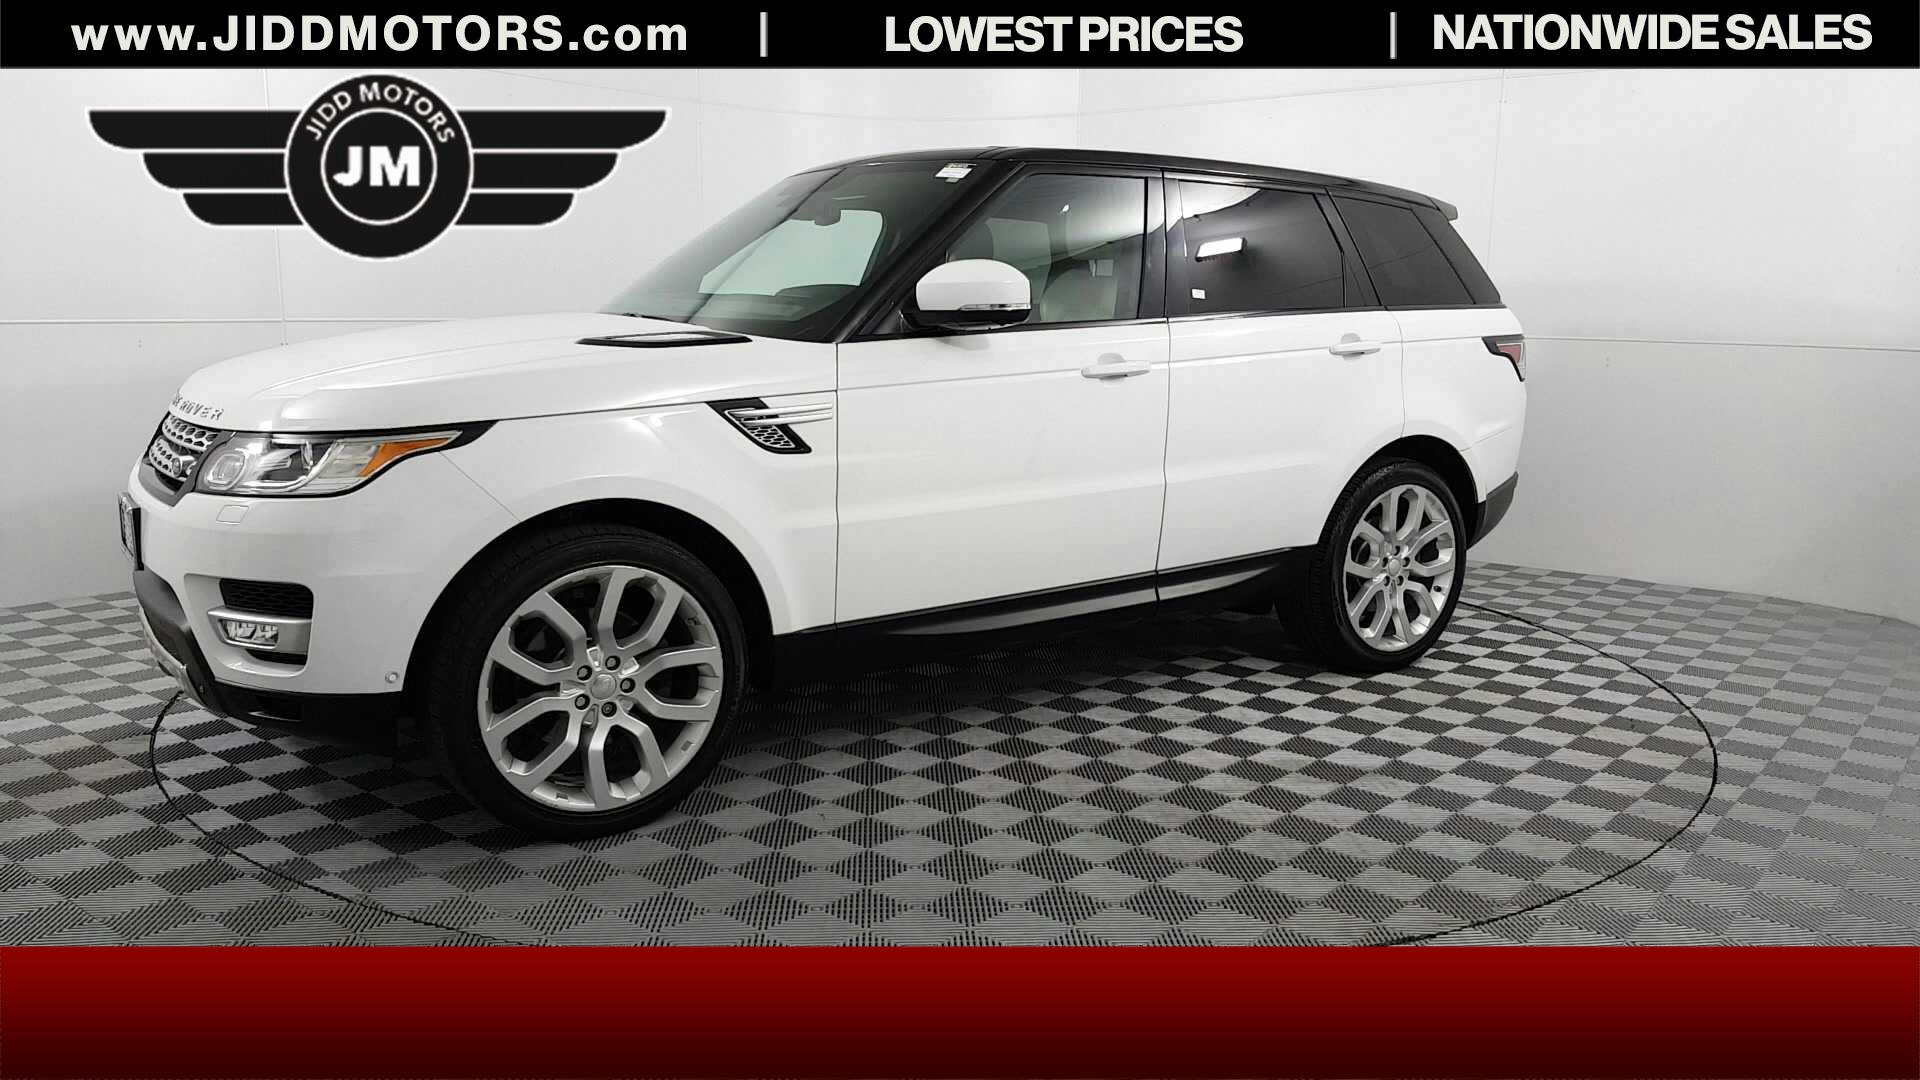 Used 2014 Land Rover Range Rover Sport 3 0L V6 Supercharged HSE in